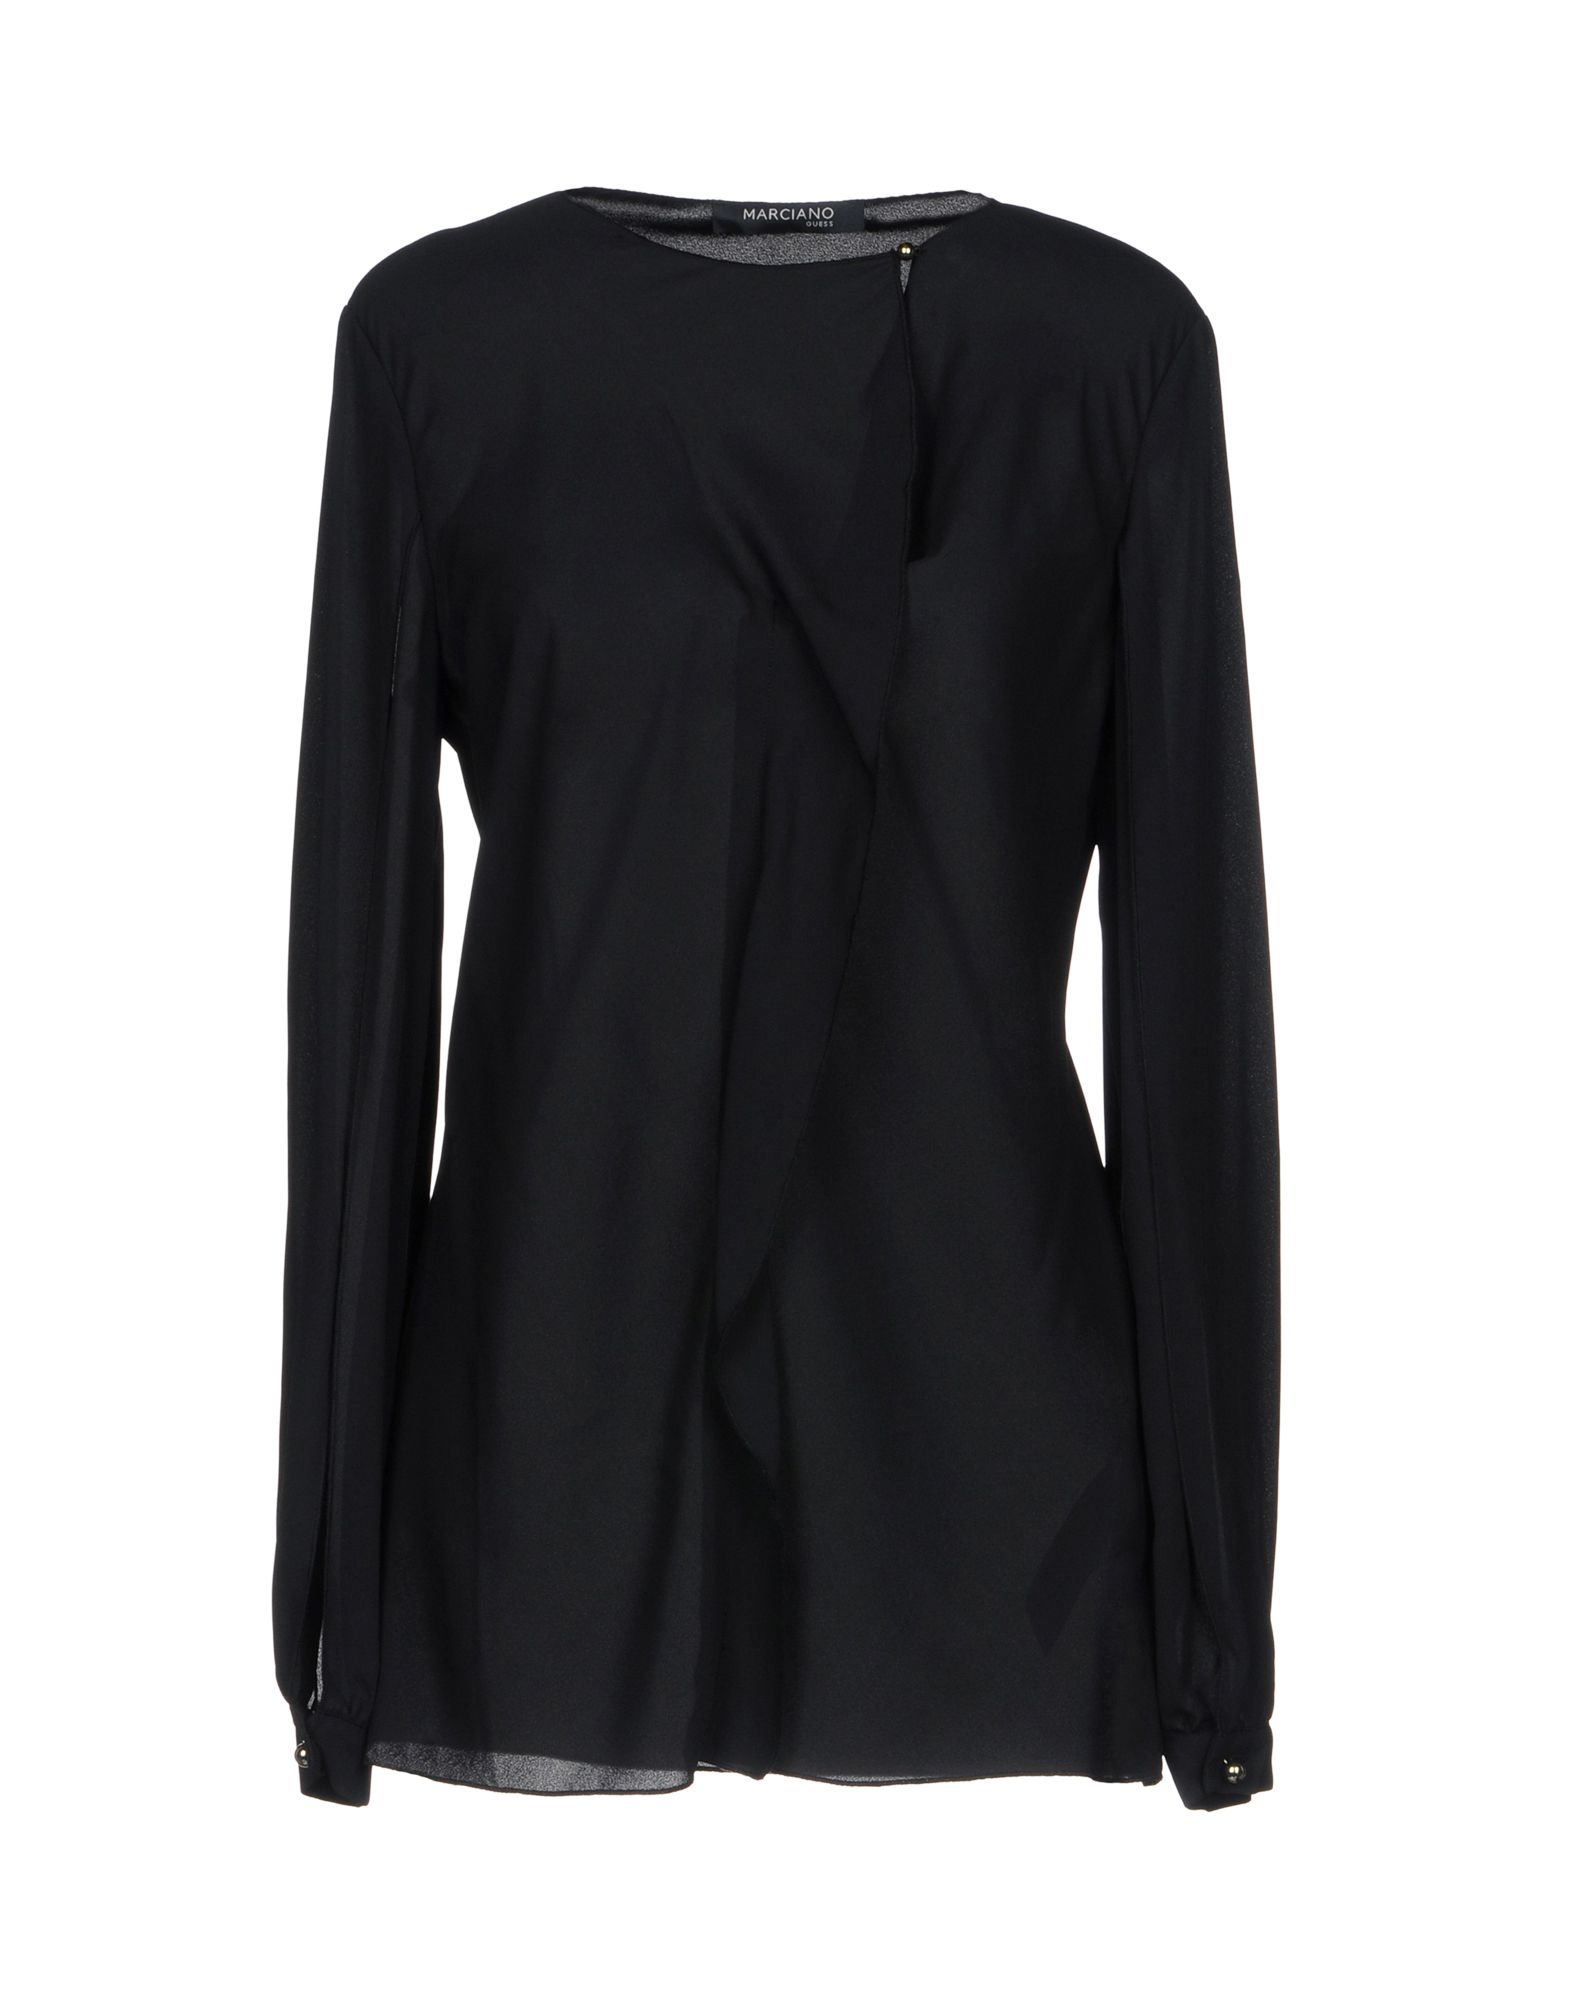 GUESS BY MARCIANO Блузка водолазка marciano guess 74g566 5400z a996